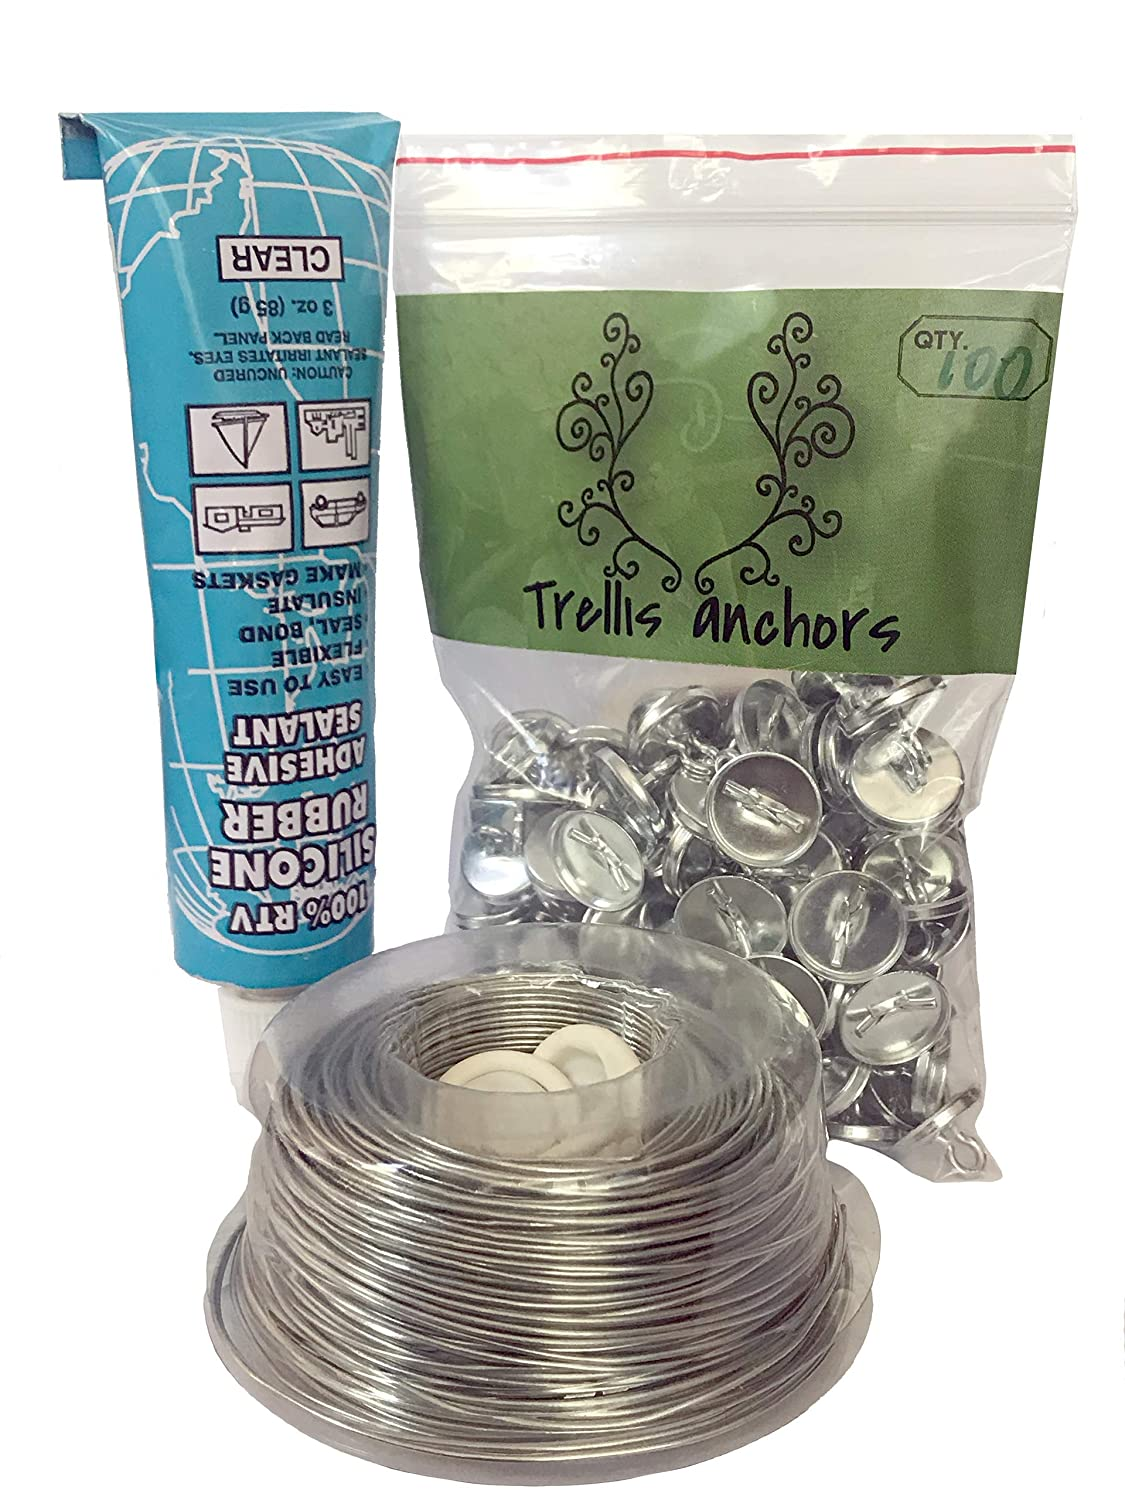 Trellis Anchor Plants, Vine, Trellis Design Kit 100-Piece Plant Anchors,3 Ounce Silicone Adhesive, 175 Feet Galvanized Steel Wire and Finger Cots